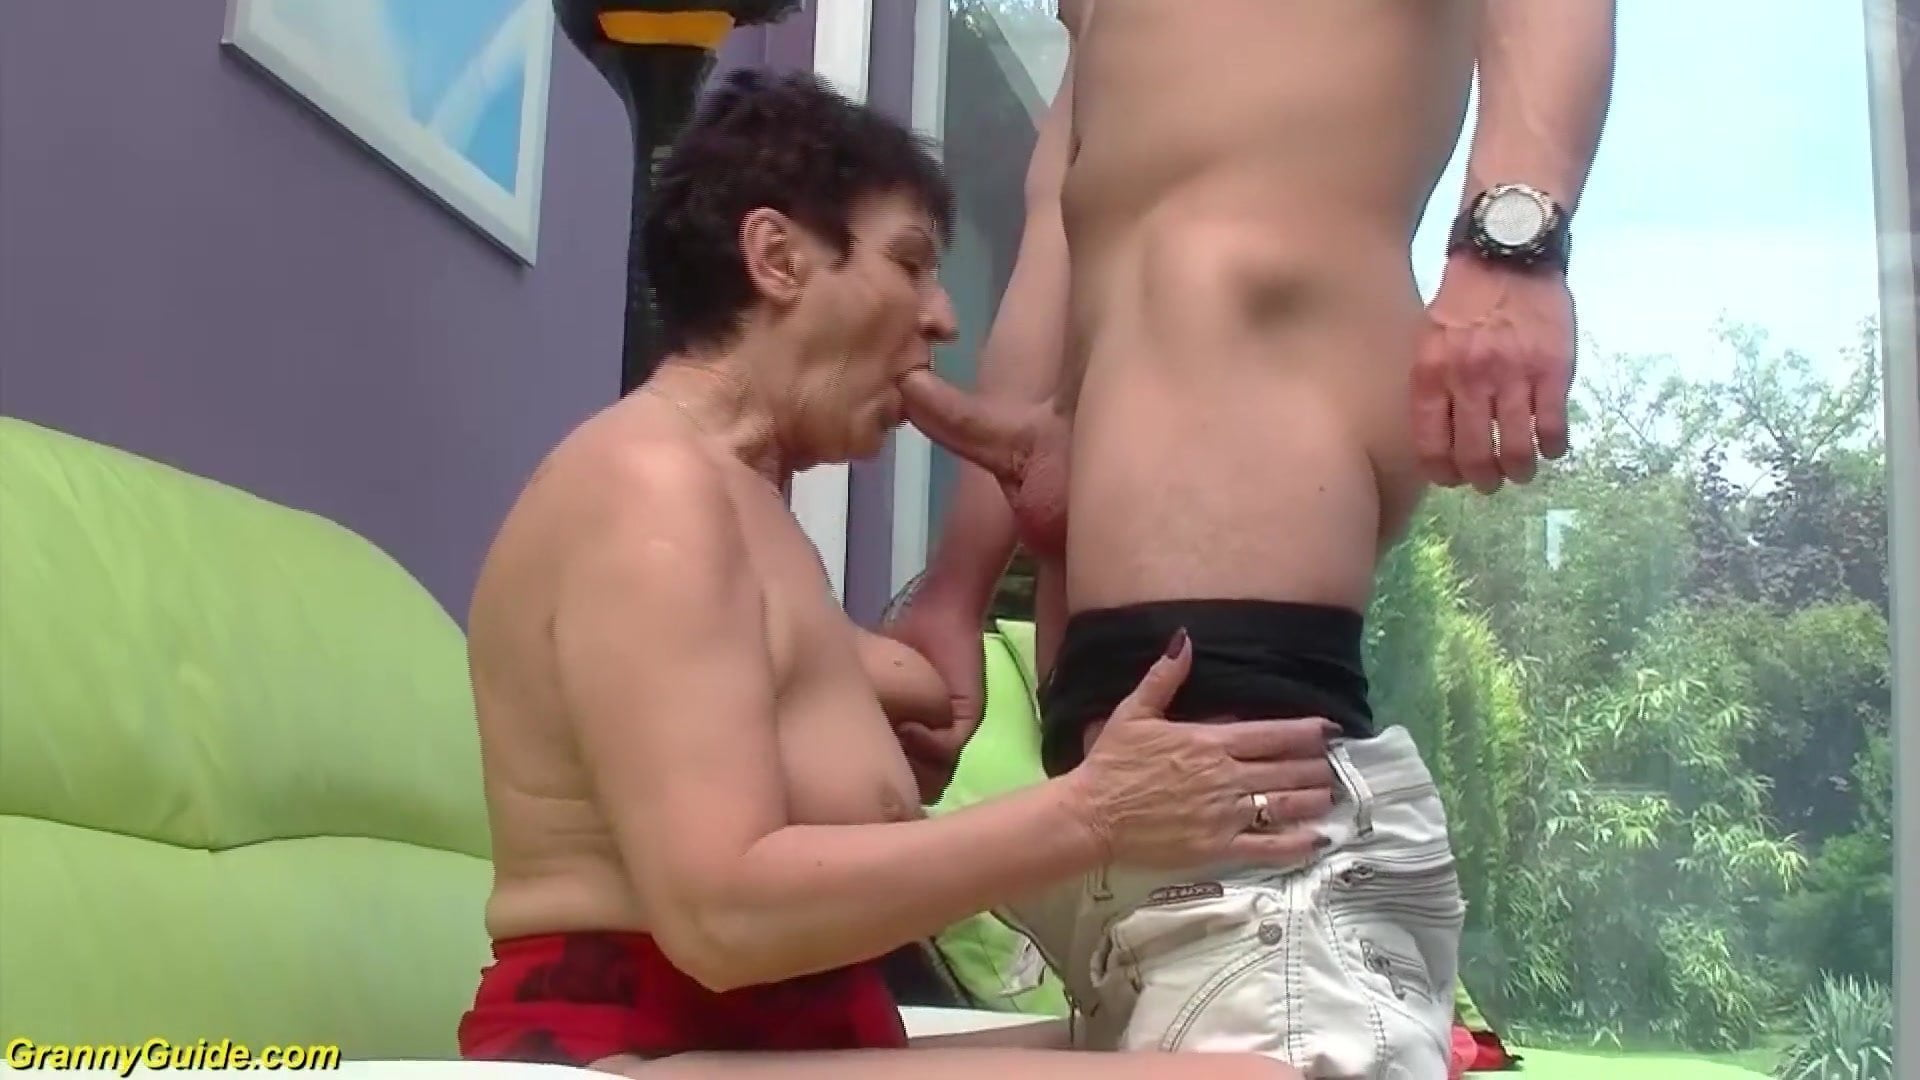 Old Granny Fuck Tube 82 years old mom rough toyboy fucked - granny brutal fucking